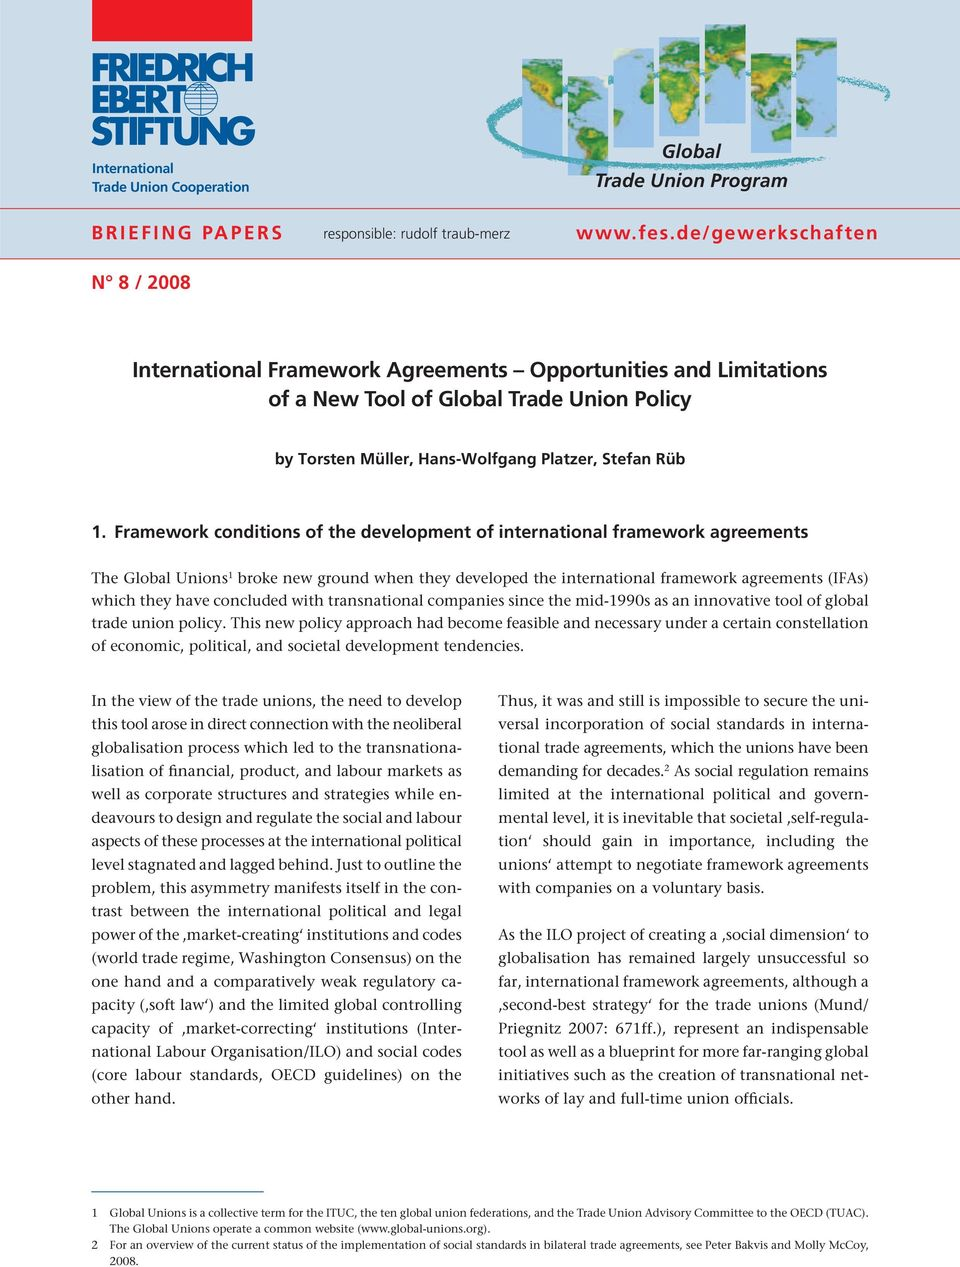 Framework conditions of the development of international framework agreements The Global Unions 1 broke new ground when they developed the international framework agreements (IFAs) which they have